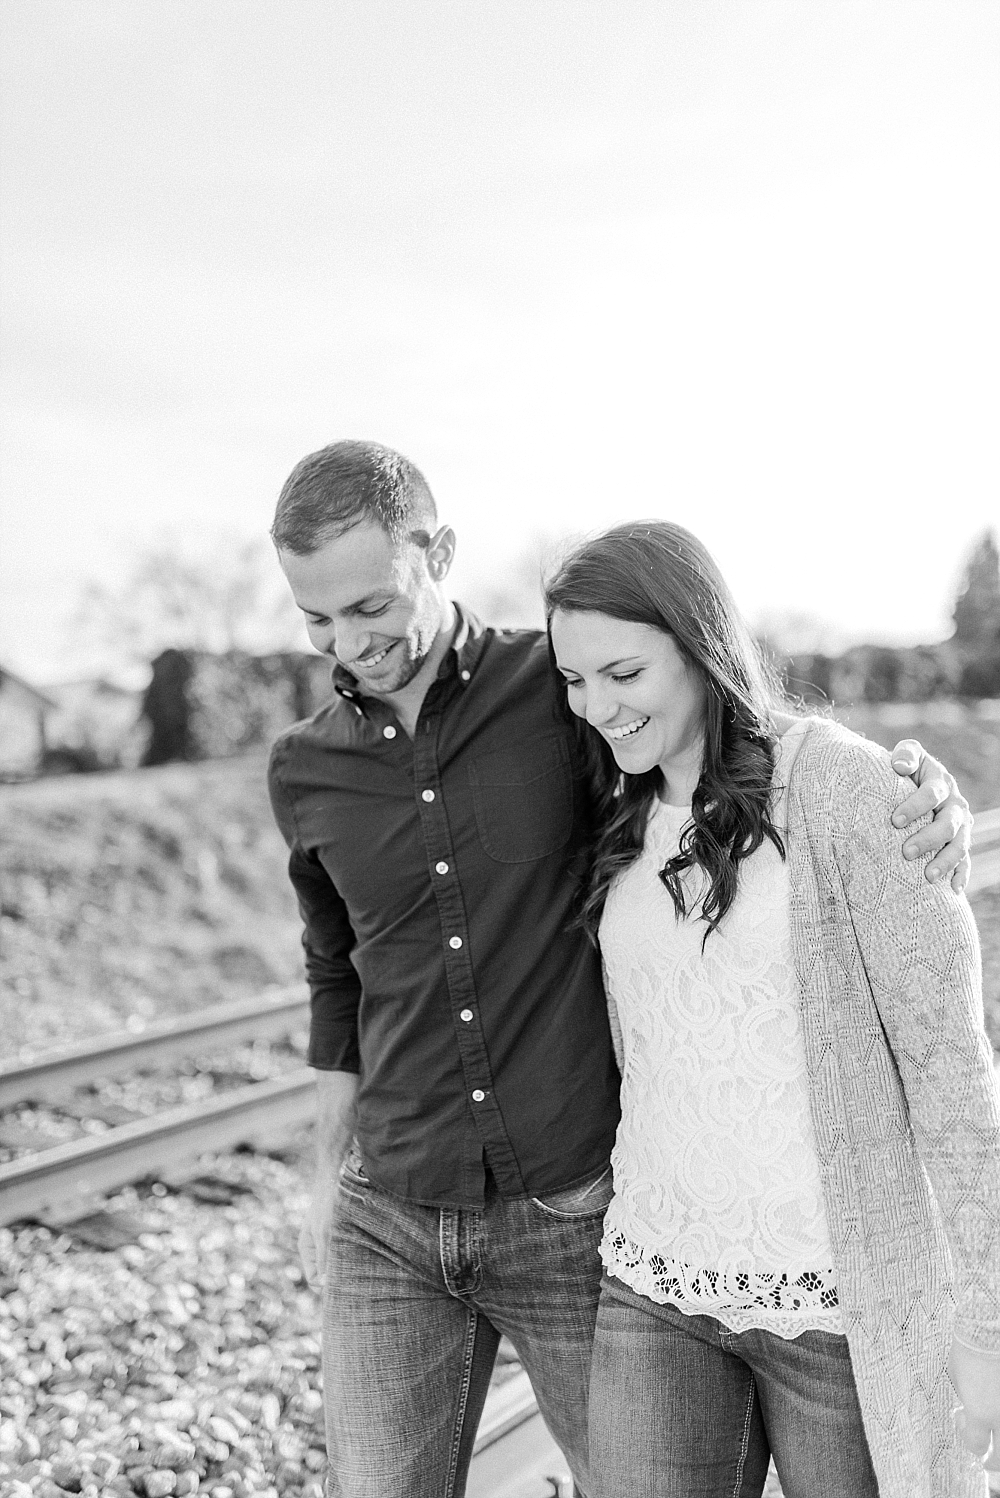 JuicebeatsPhotography_KnoxvilleEngagement_Kristina&Ben_0019.jpg